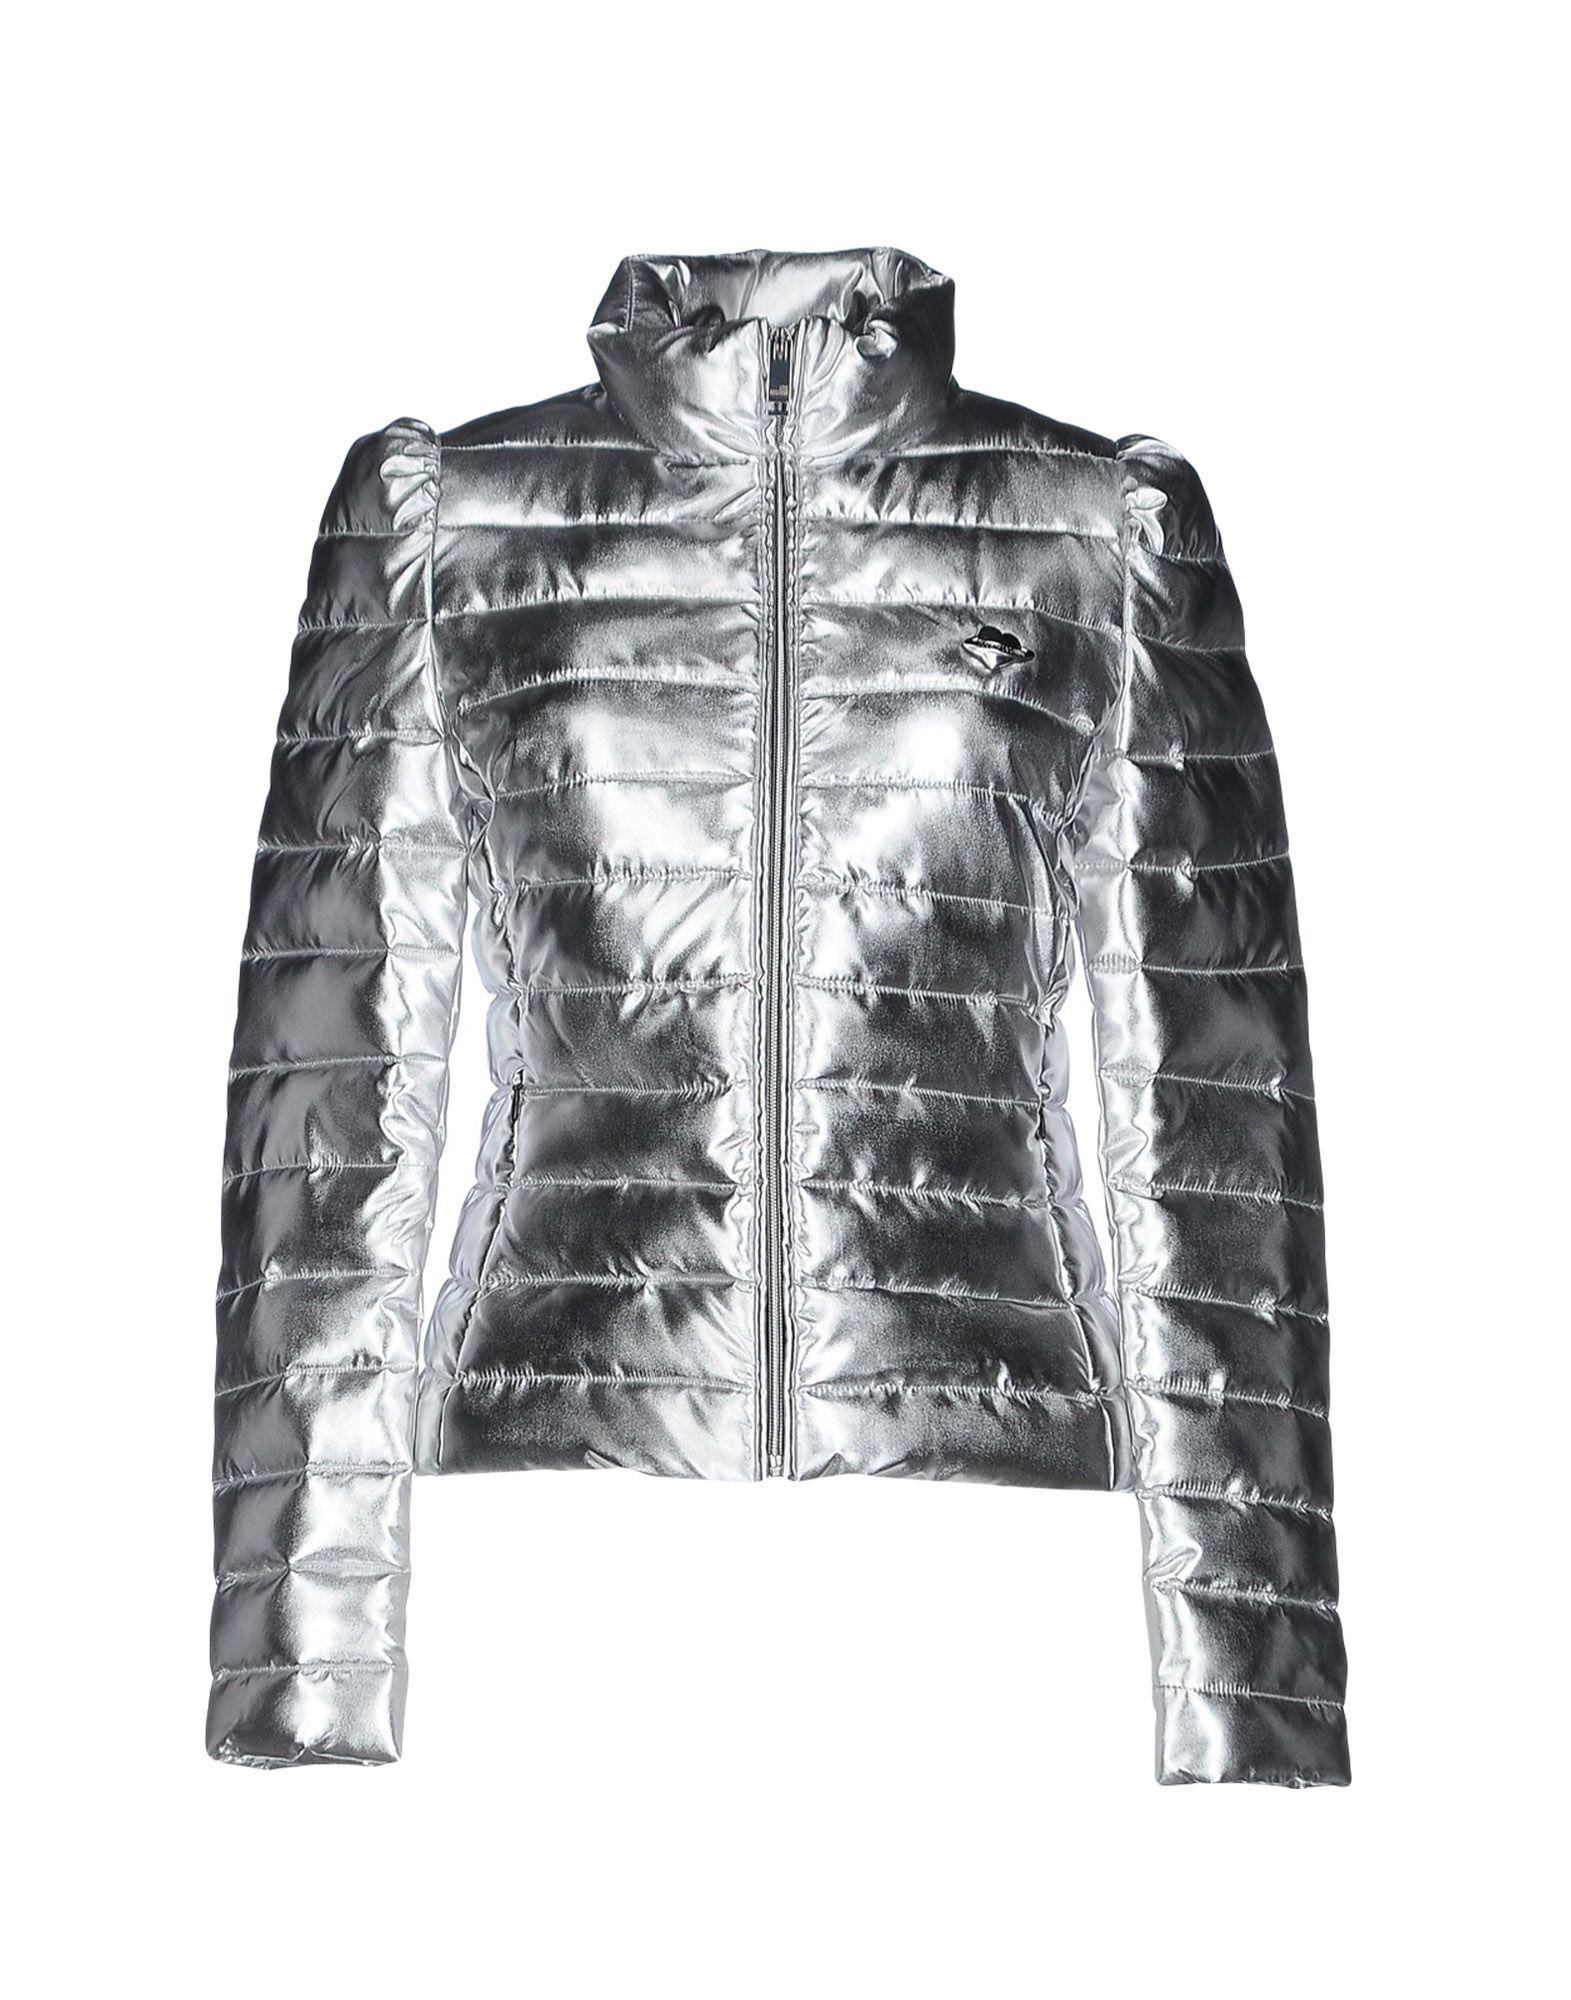 7dfd4d08cb573 Love Moschino Jacket in Metallic - Lyst